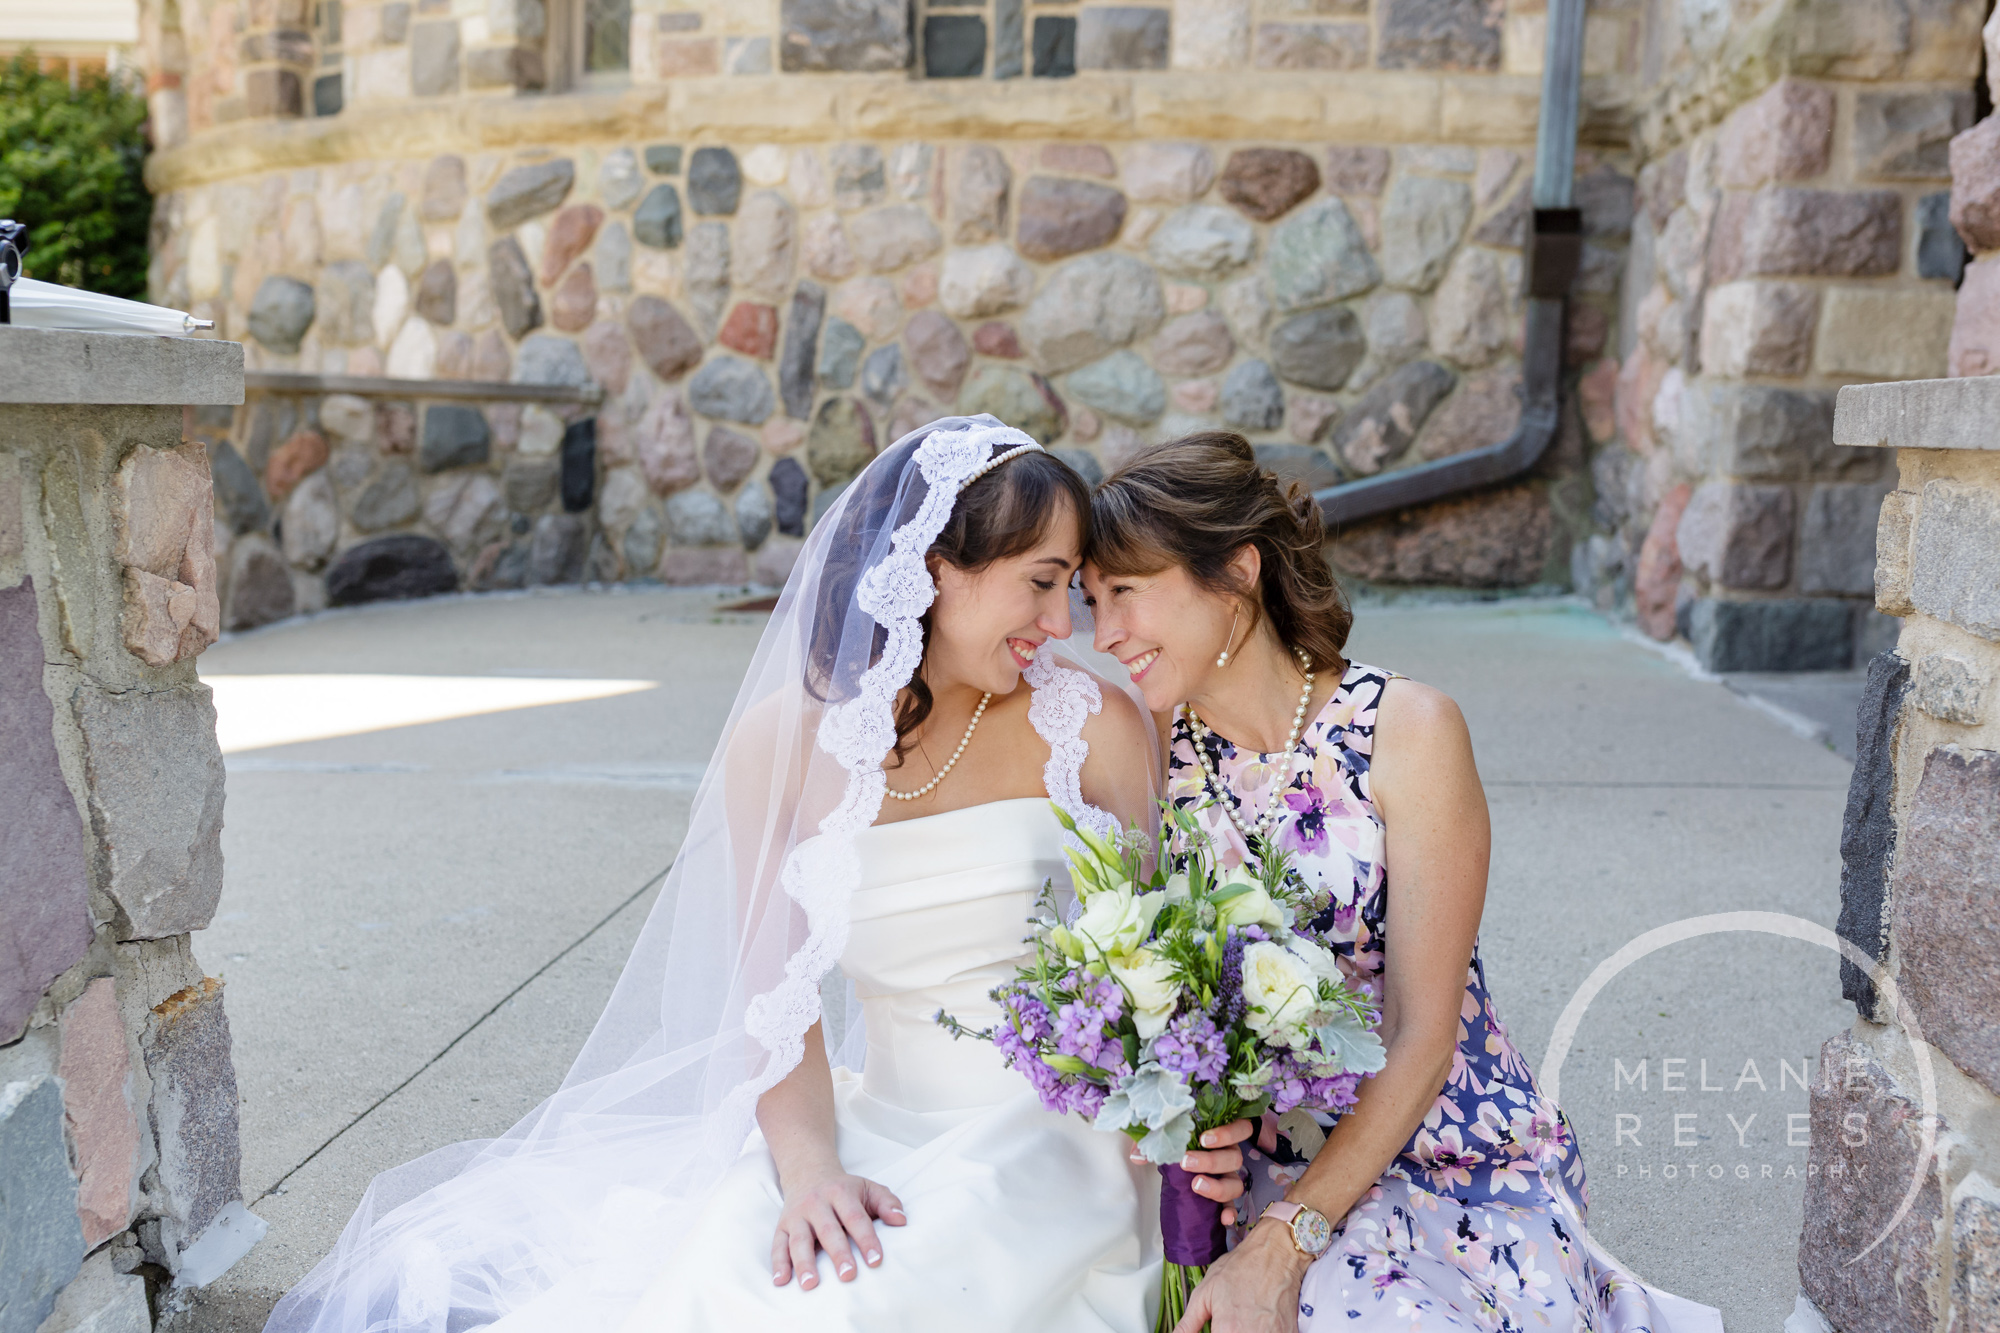 wedding_photographer_captured_moments_melaniereyes_063.jpg